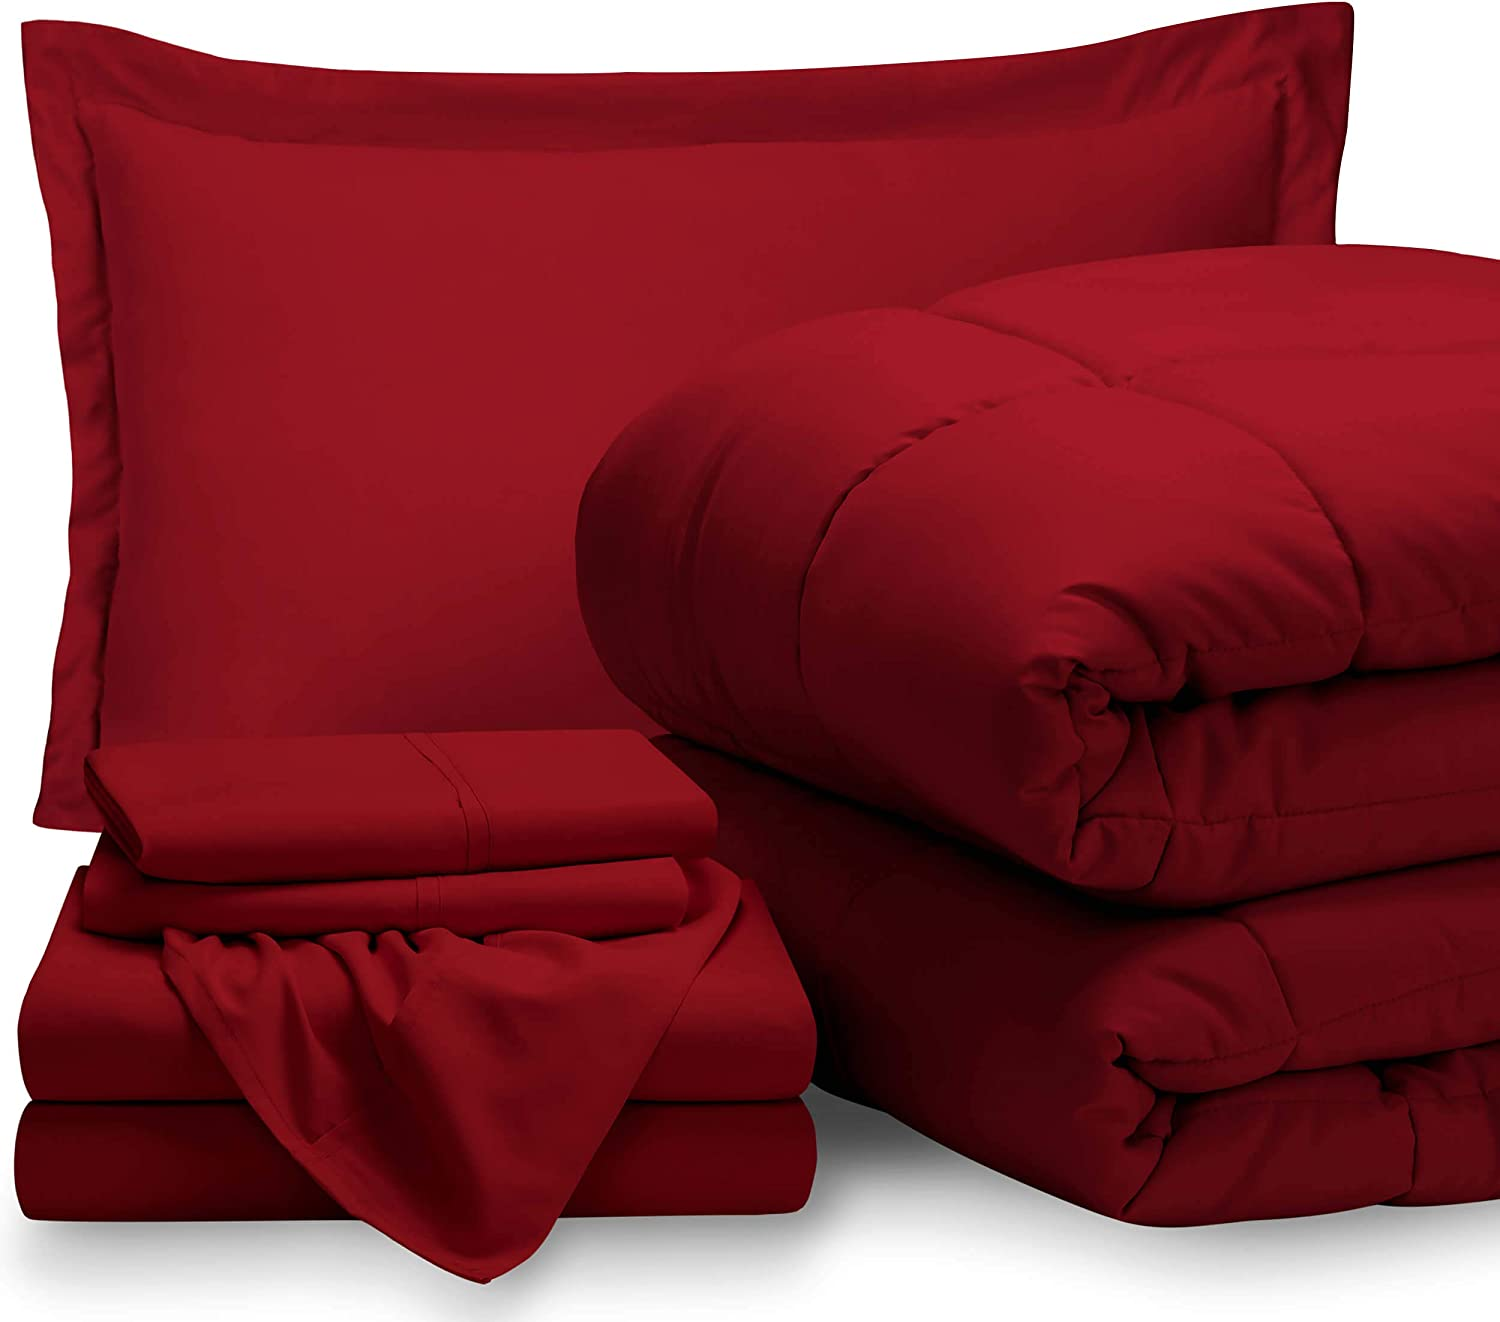 Bare Home Twin Sheet Set - 1800 Ultra-Soft Microfiber Bed Sheets (Twin, Red) + Comforter Set - All Season (Twin/Twin XL, Red)